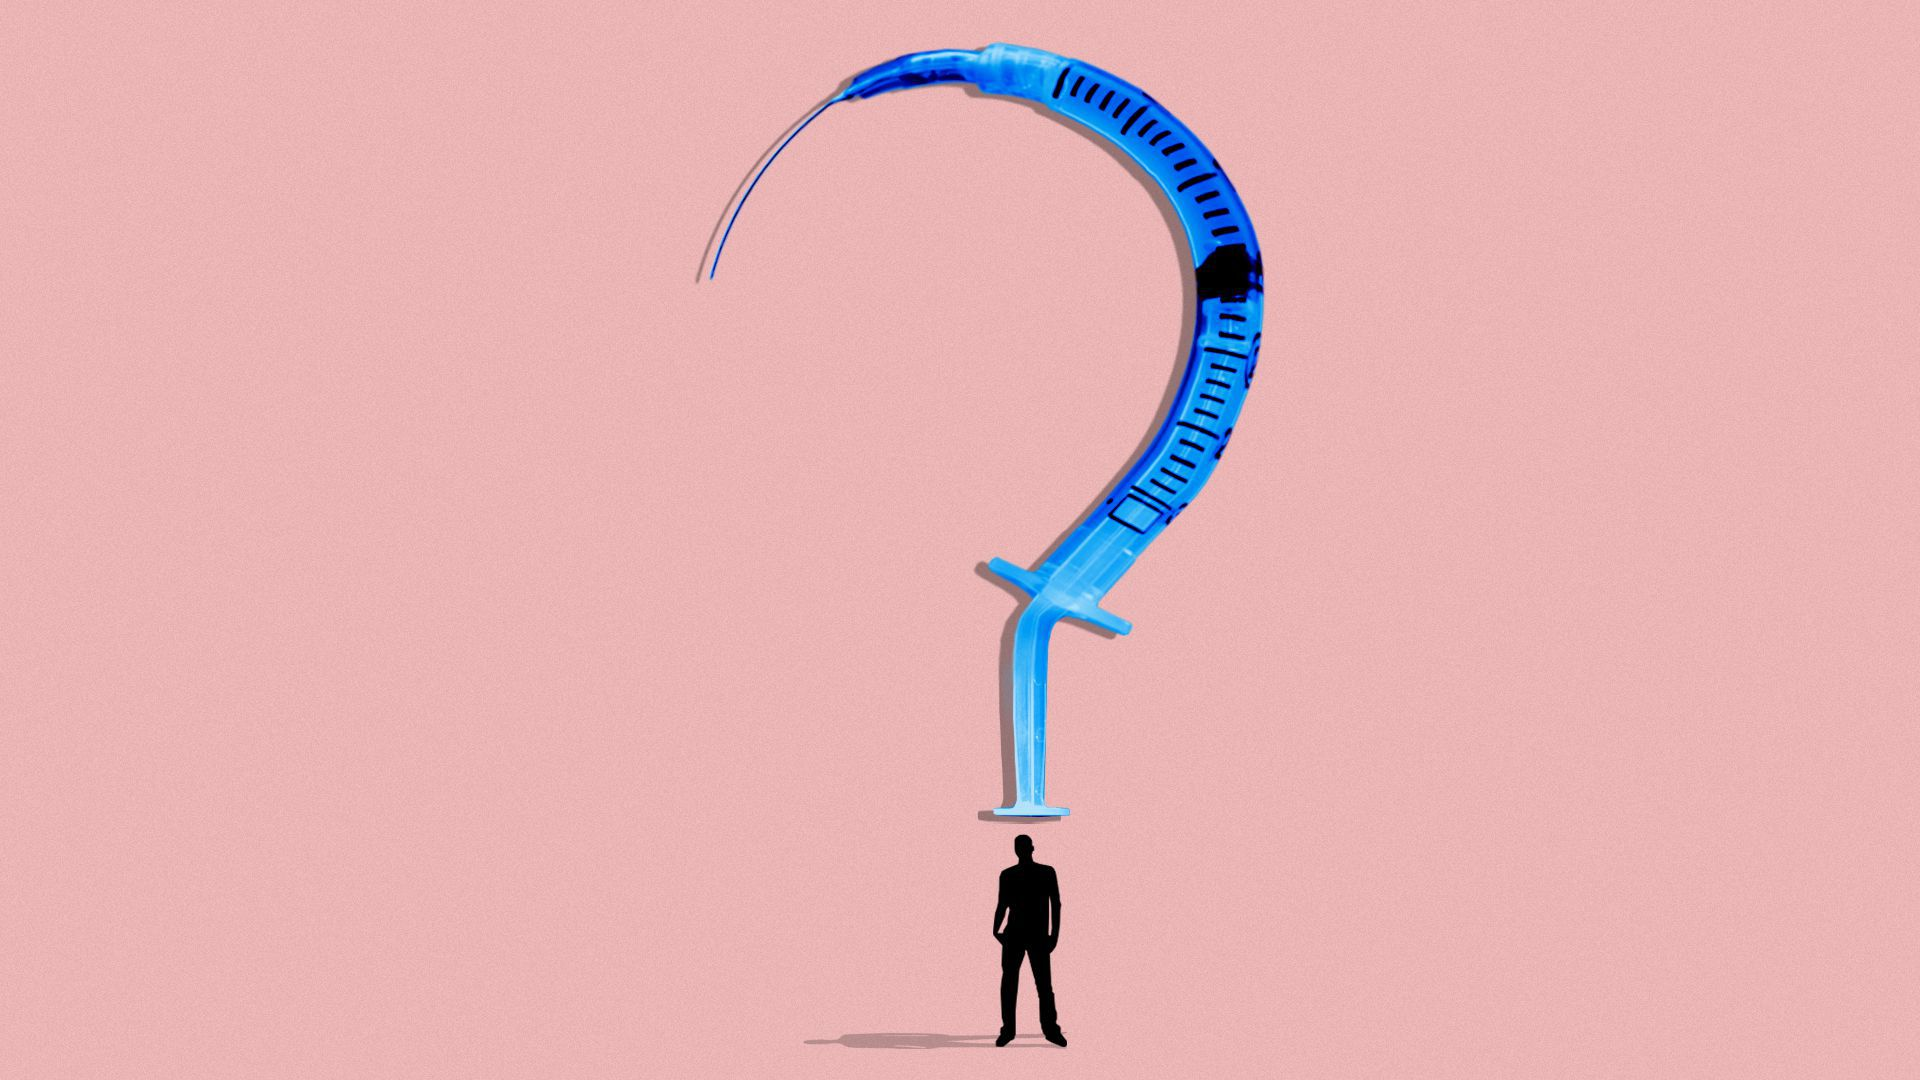 Illustration of a vaccine syringe in the shape of a question mark, hovering over a person in silhouette